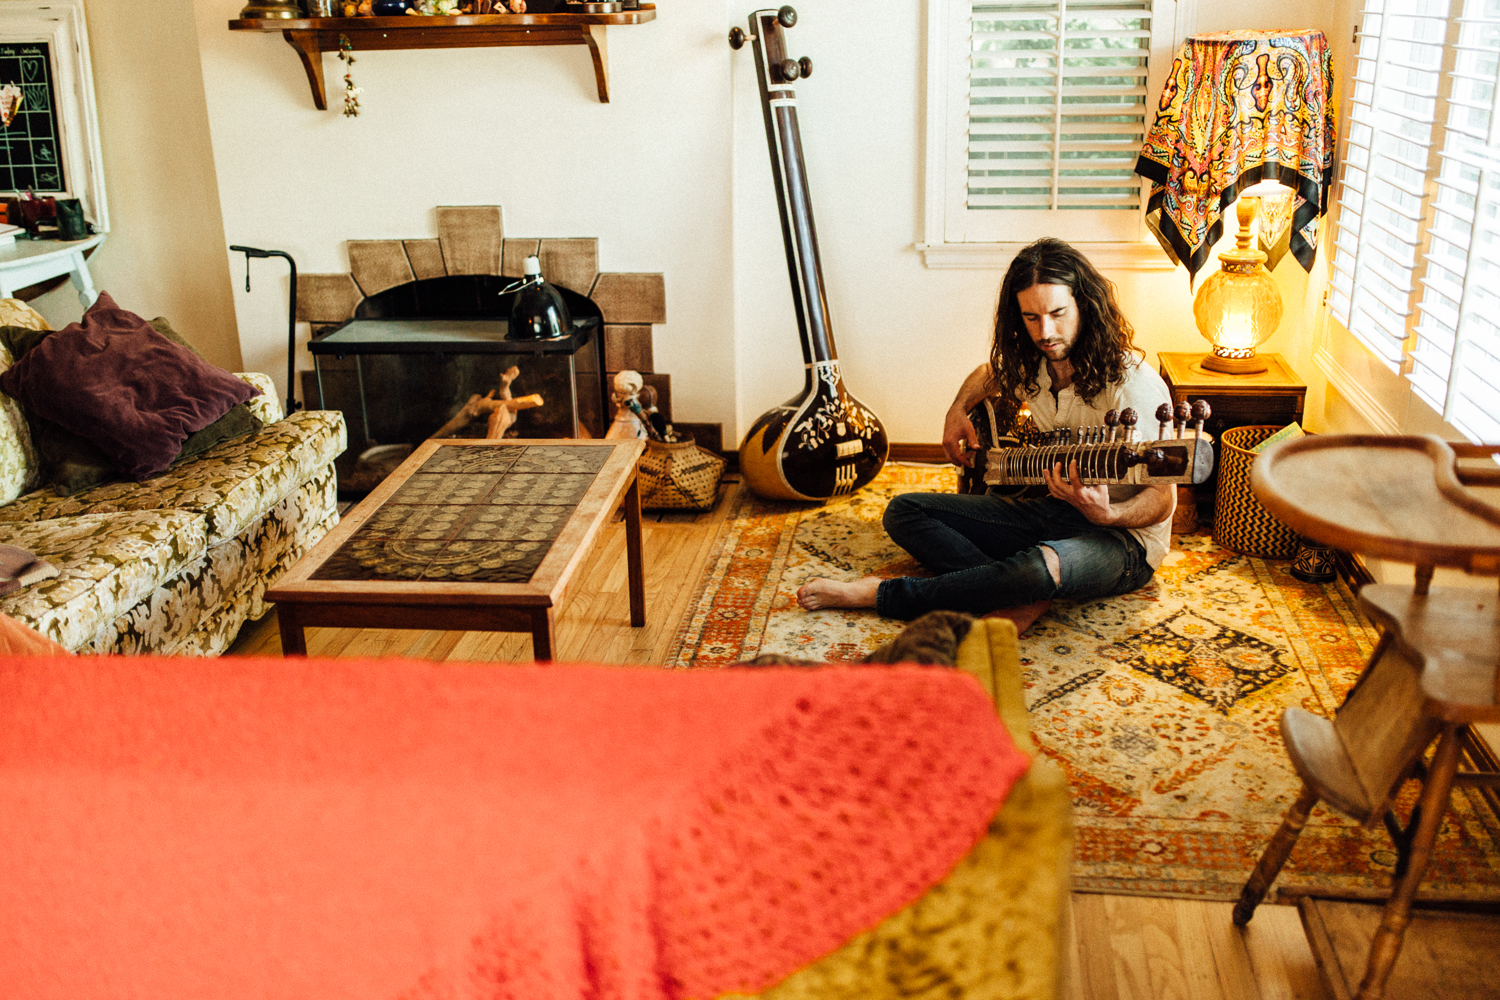 man-sitting-on-floor-playing-musical-instrument-photo-session-with-jen-fairchild-photography-slc-utah